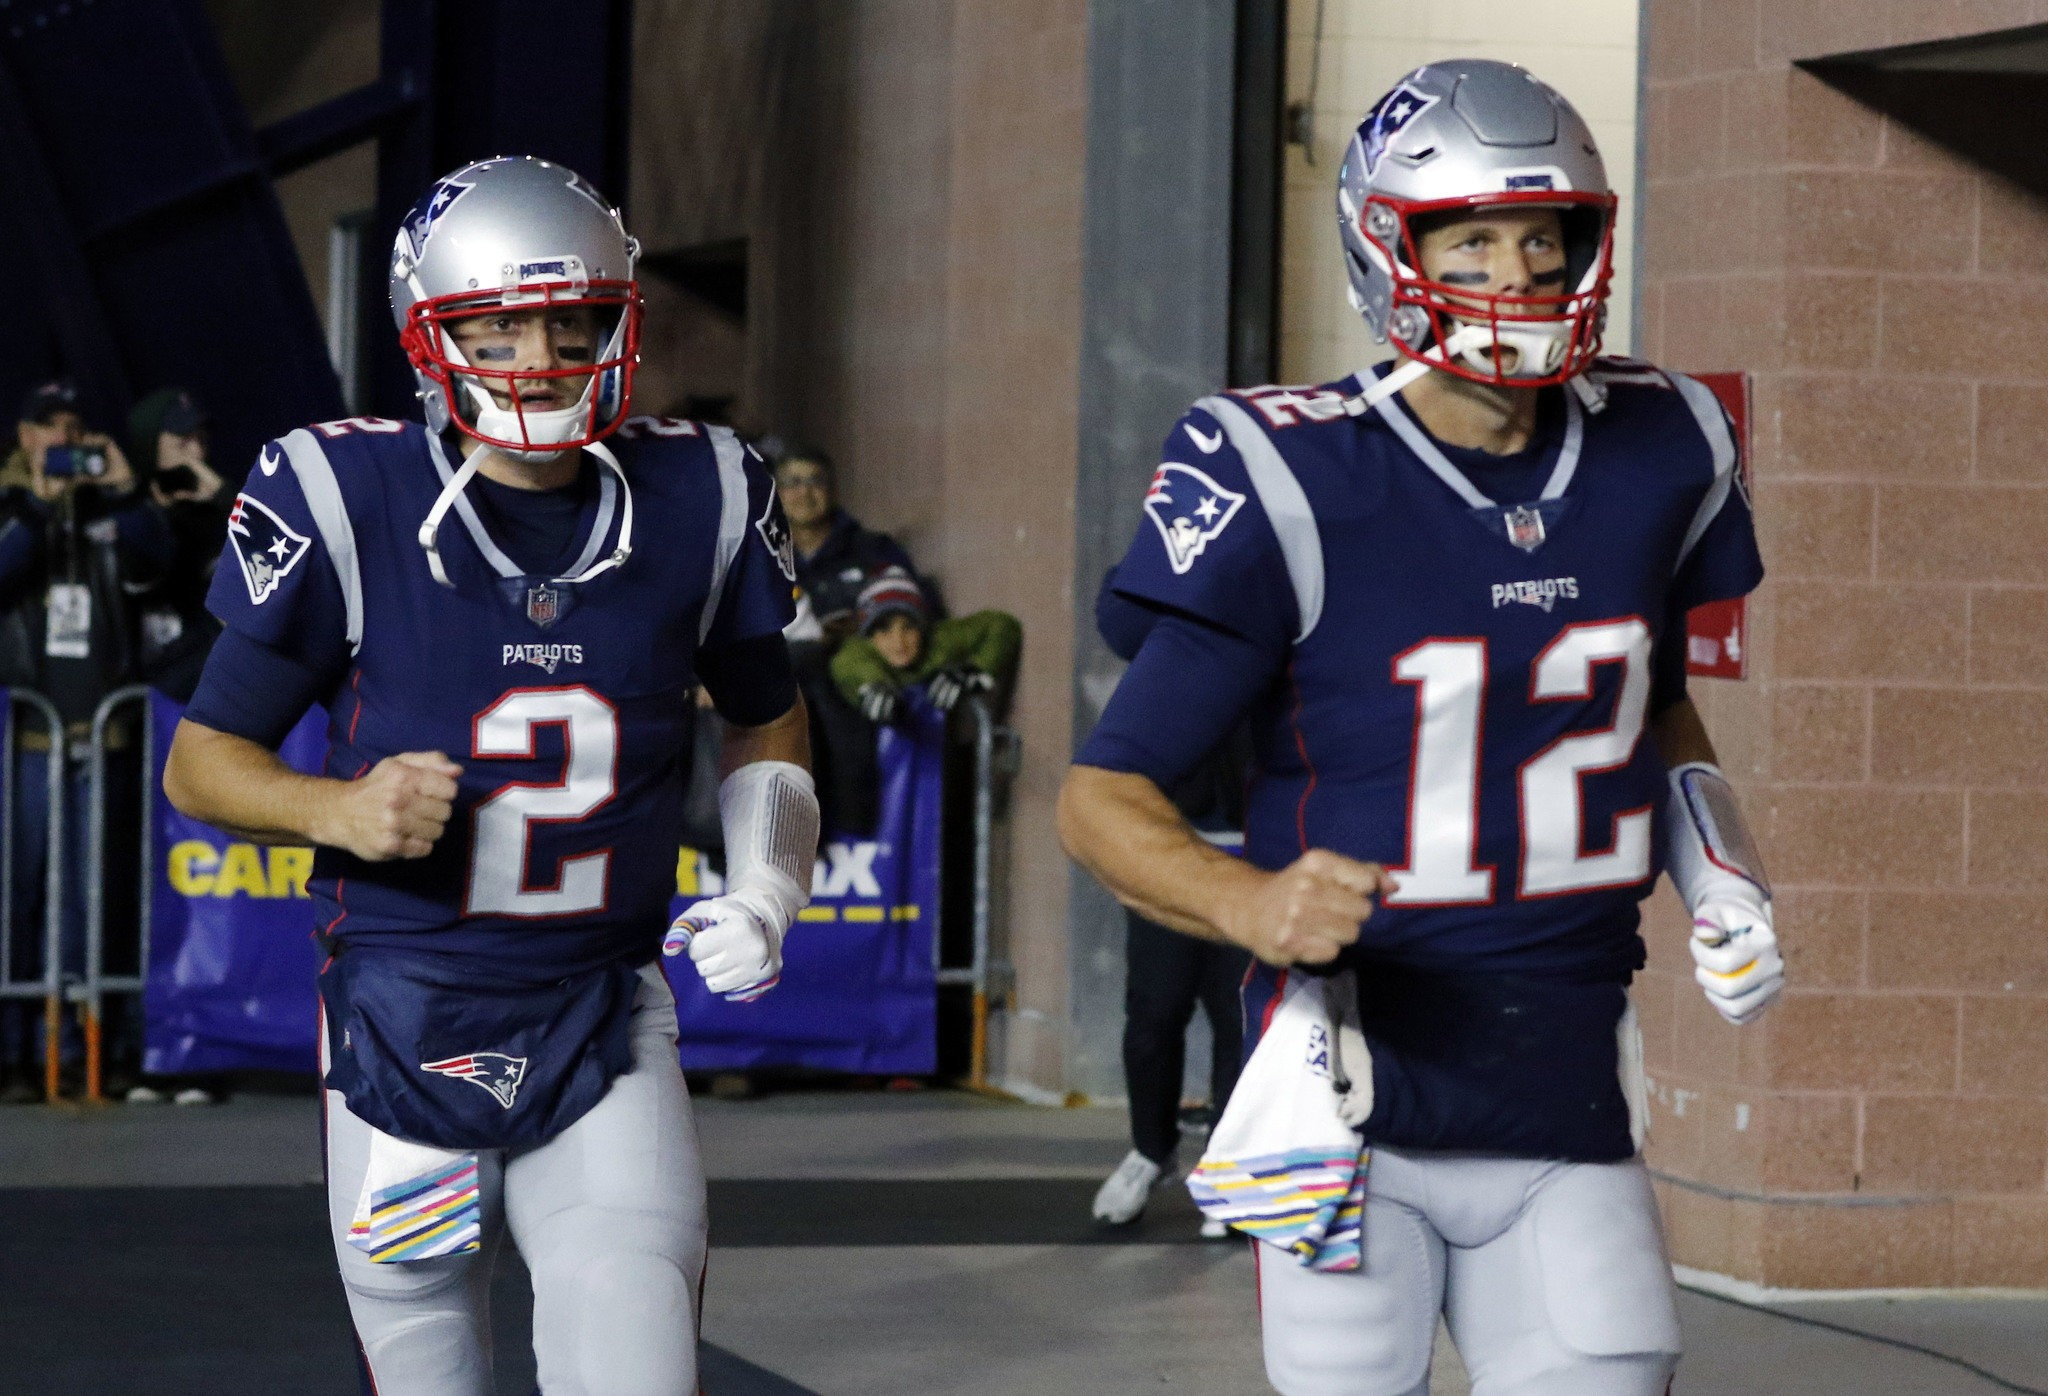 Tom Brady Questionable Brian Hoyer Has New England Patriots Teammates Confidence If He Starts Sunday Masslive Com